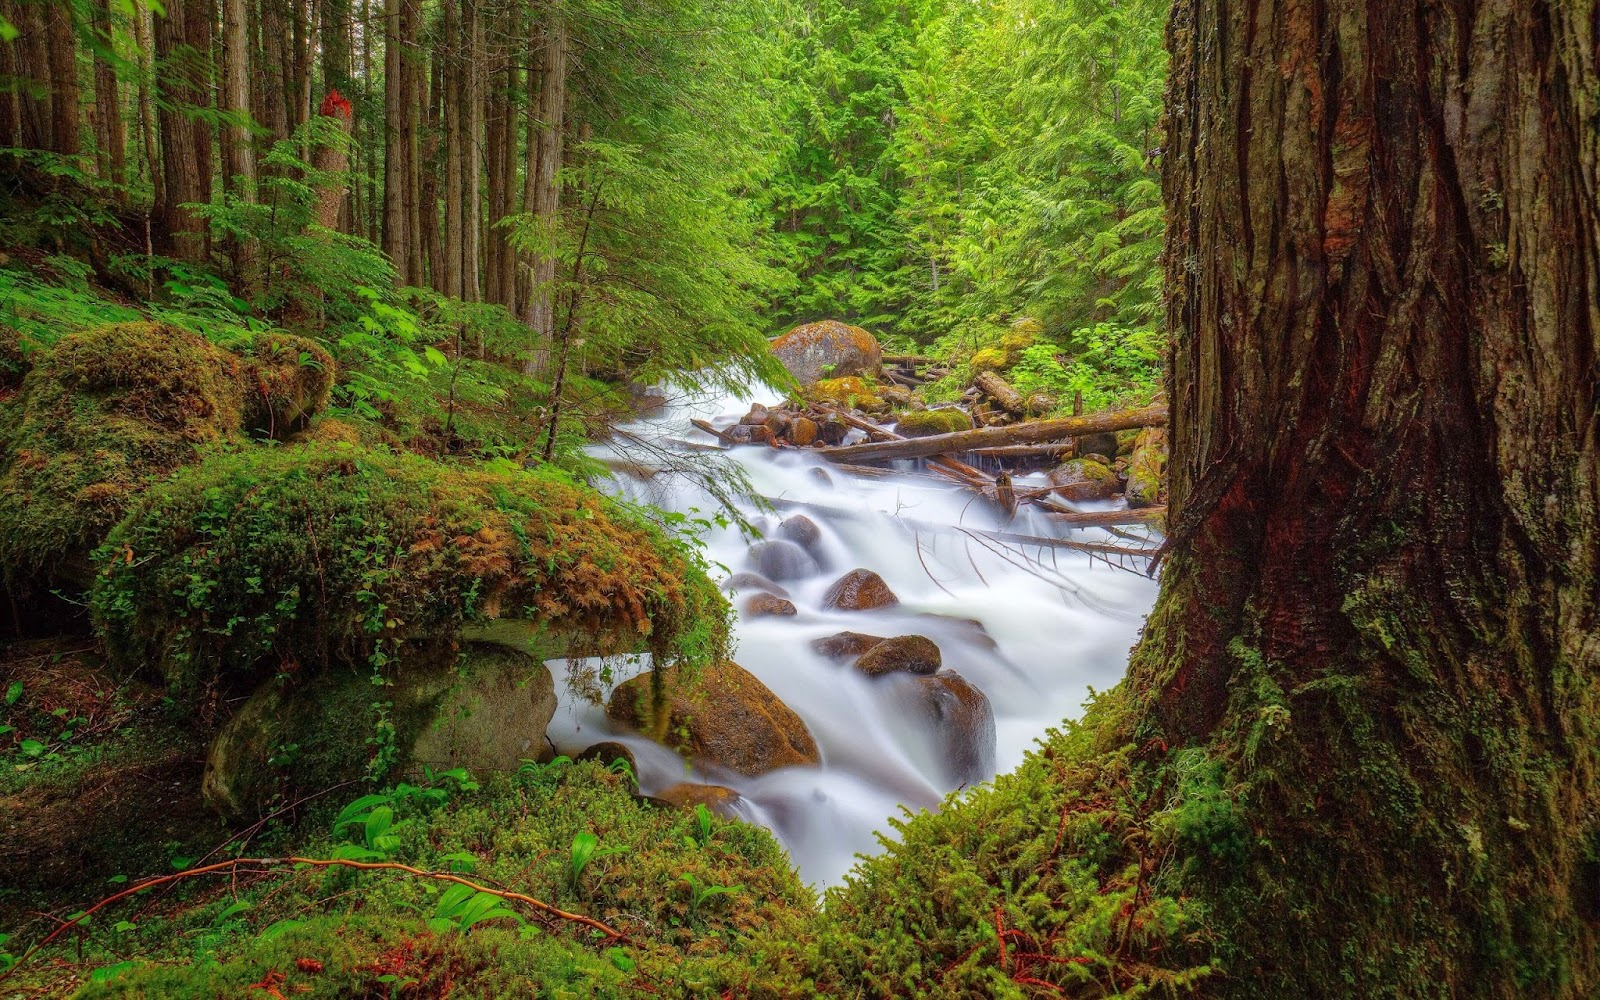 Nature images hd wallpapers images for tsu images - Nature wallpaper status ...